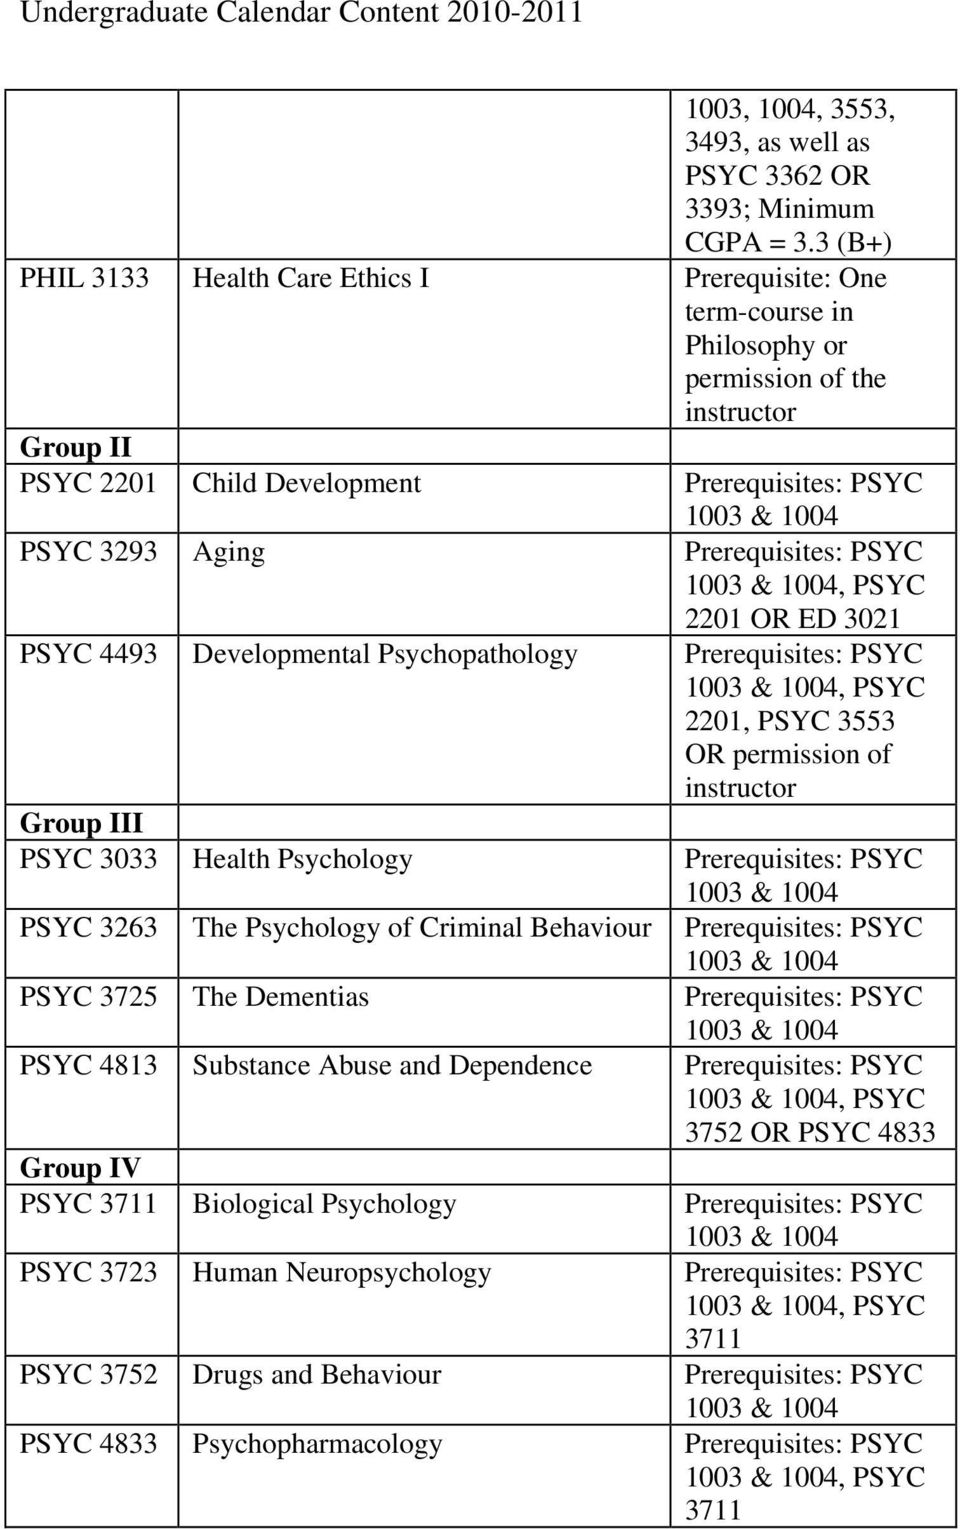 Prerequisites: PSYC, PSYC 2201 OR ED 3021 PSYC 4493 Developmental Psychopathology Prerequisites: PSYC, PSYC 2201, PSYC 3553 OR permission of instructor Group III PSYC 3033 Health Psychology